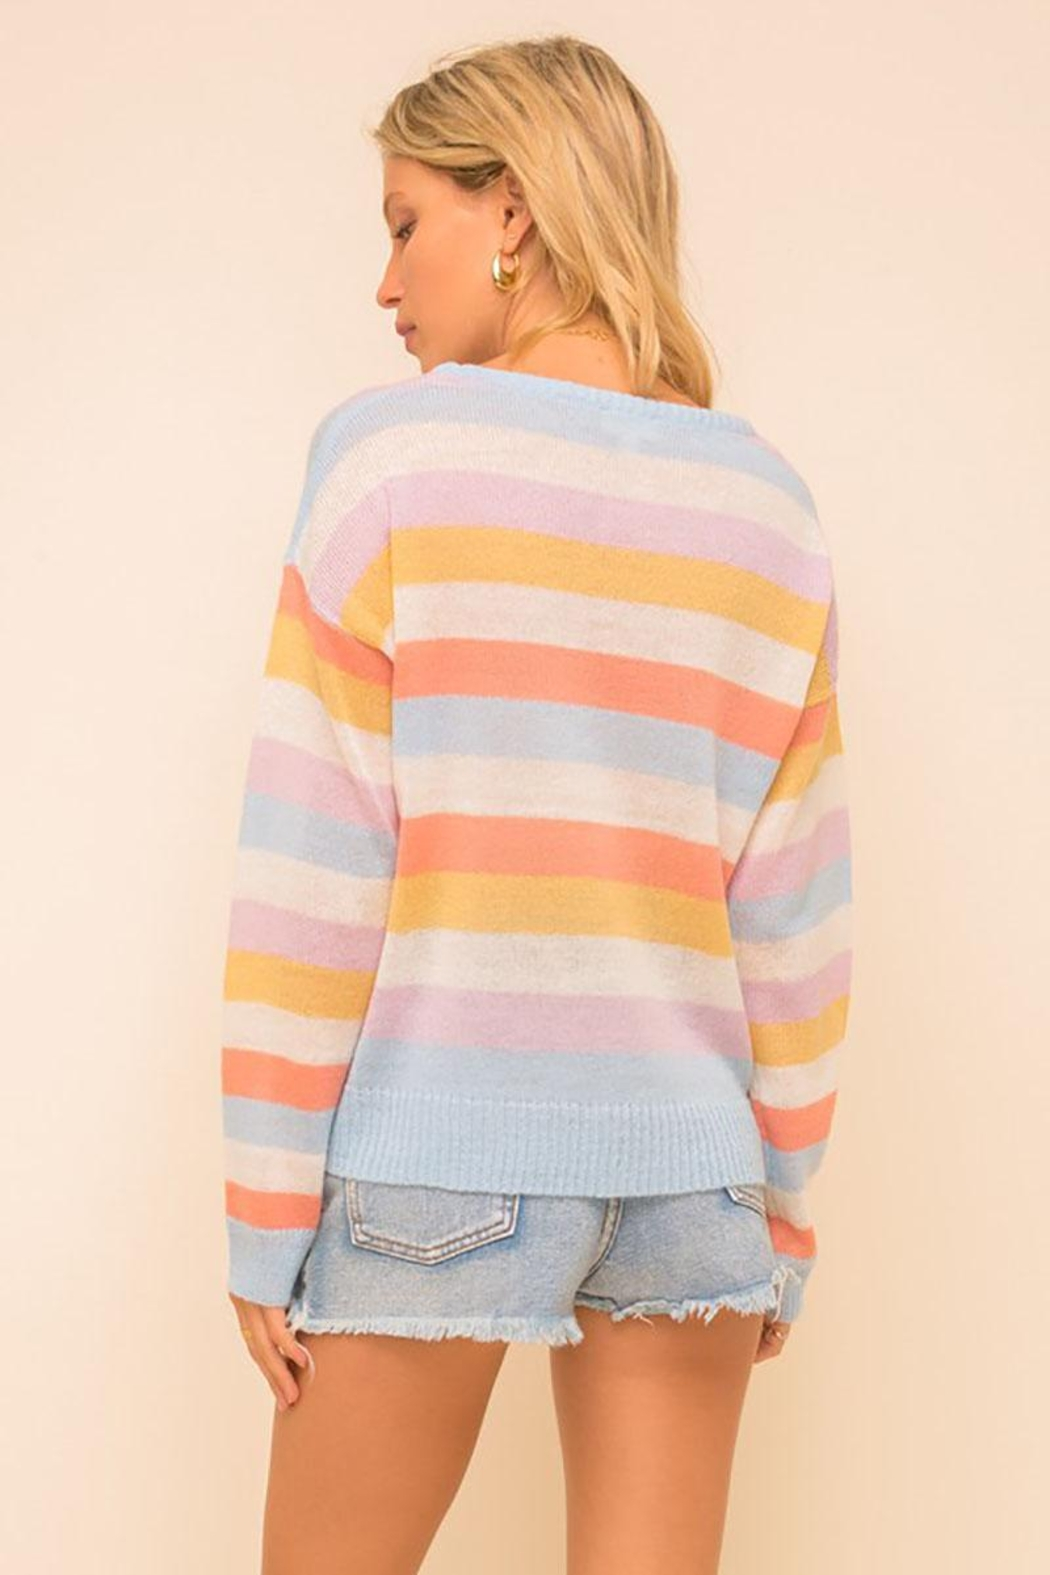 Mint Cloud Boutique Multi Colored Stripe Pullover Sweater Top - Front Full Image